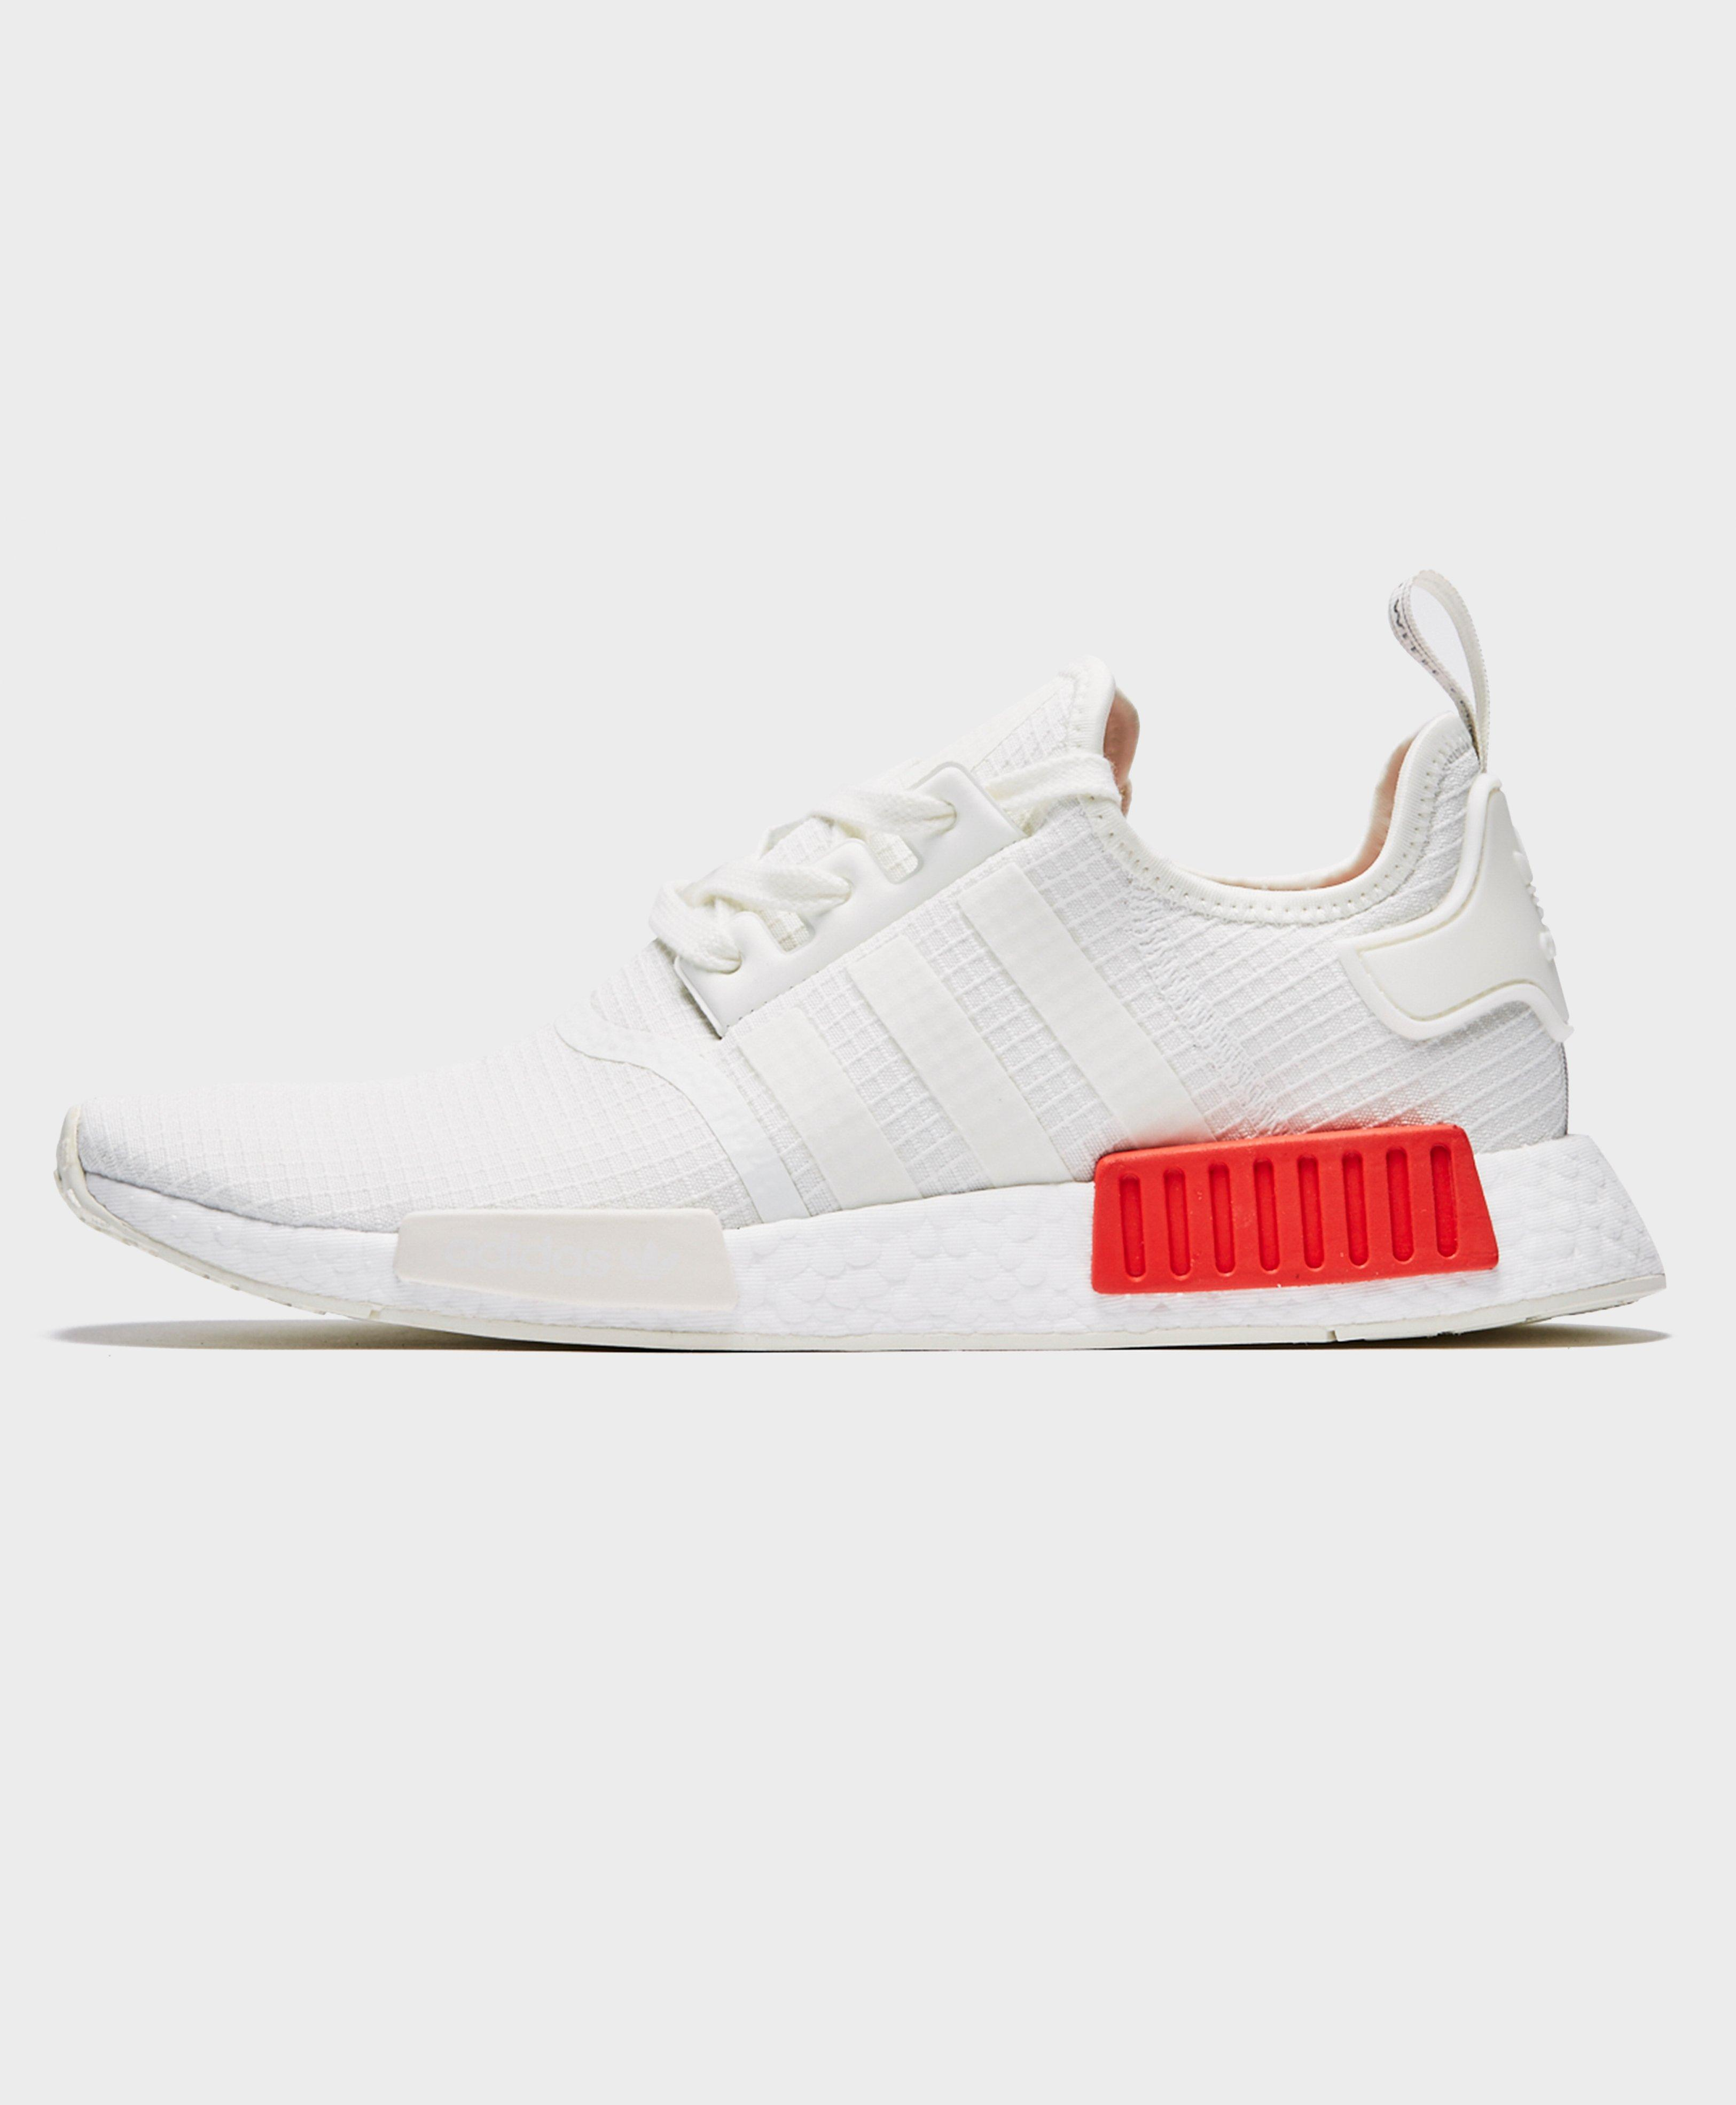 adidas Originals Nmd R1 Ripstop in White for Men - Lyst 81ecff94f